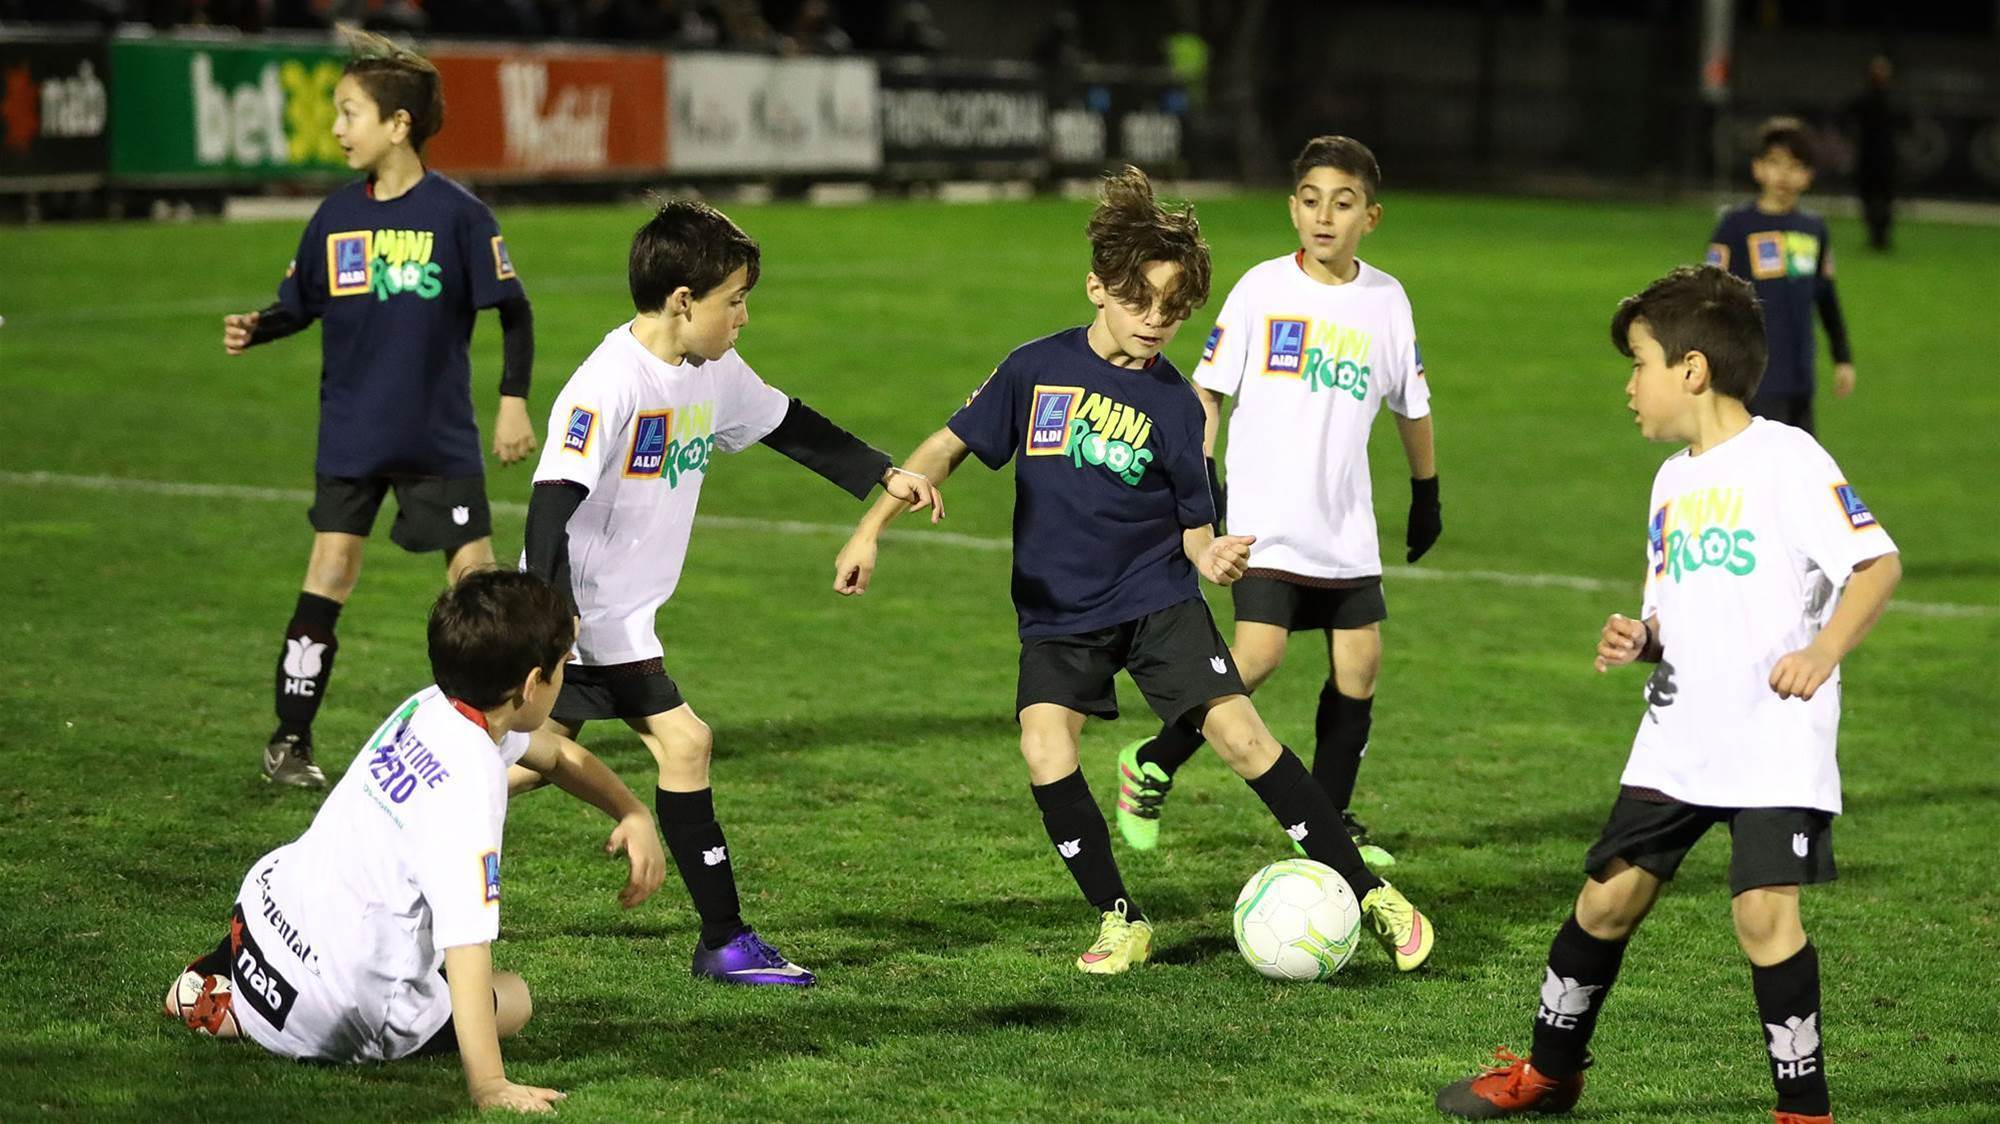 Football continues to dominate Aussie club sport